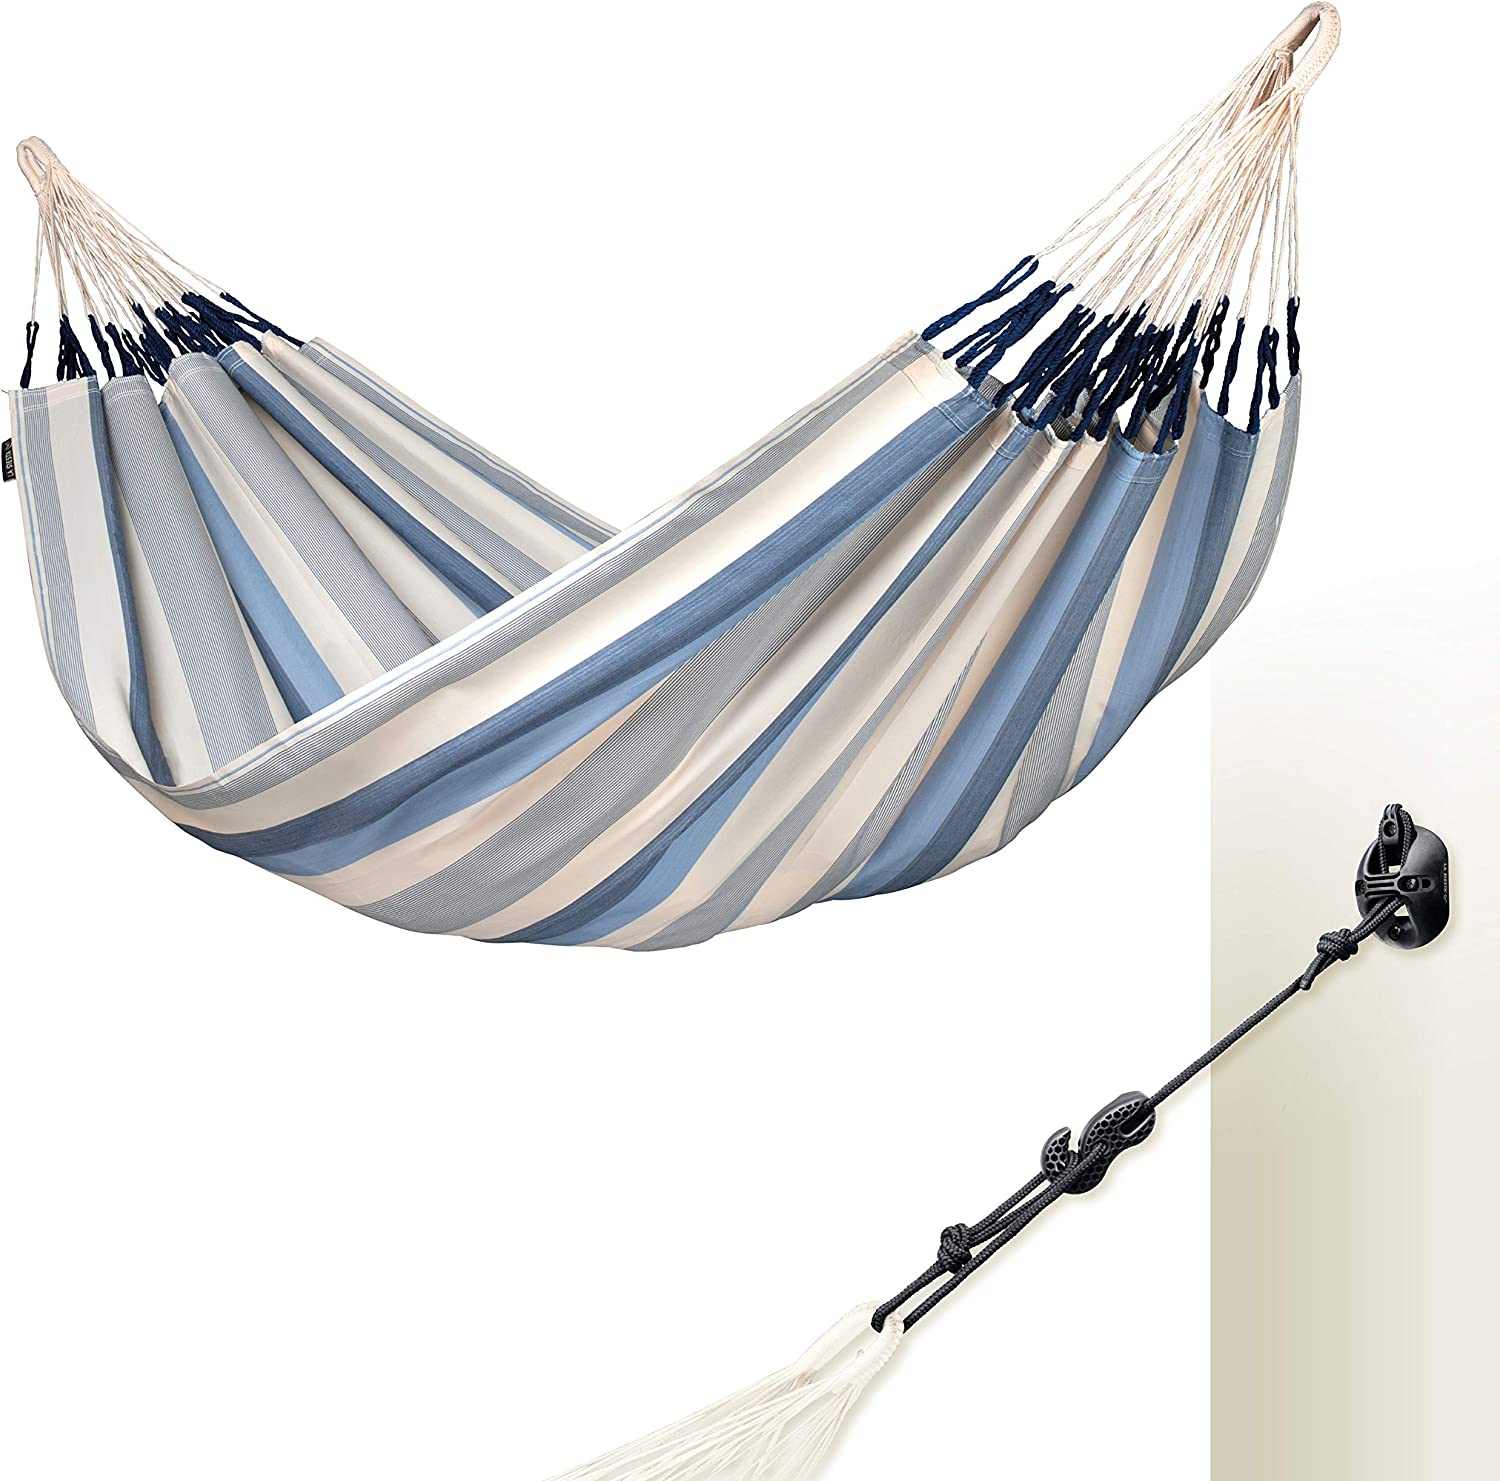 LA SIESTA Brisa Sea Salt – Weather-Resistant Double Classic Hammock with CasaMount Black Multipurpose Suspension